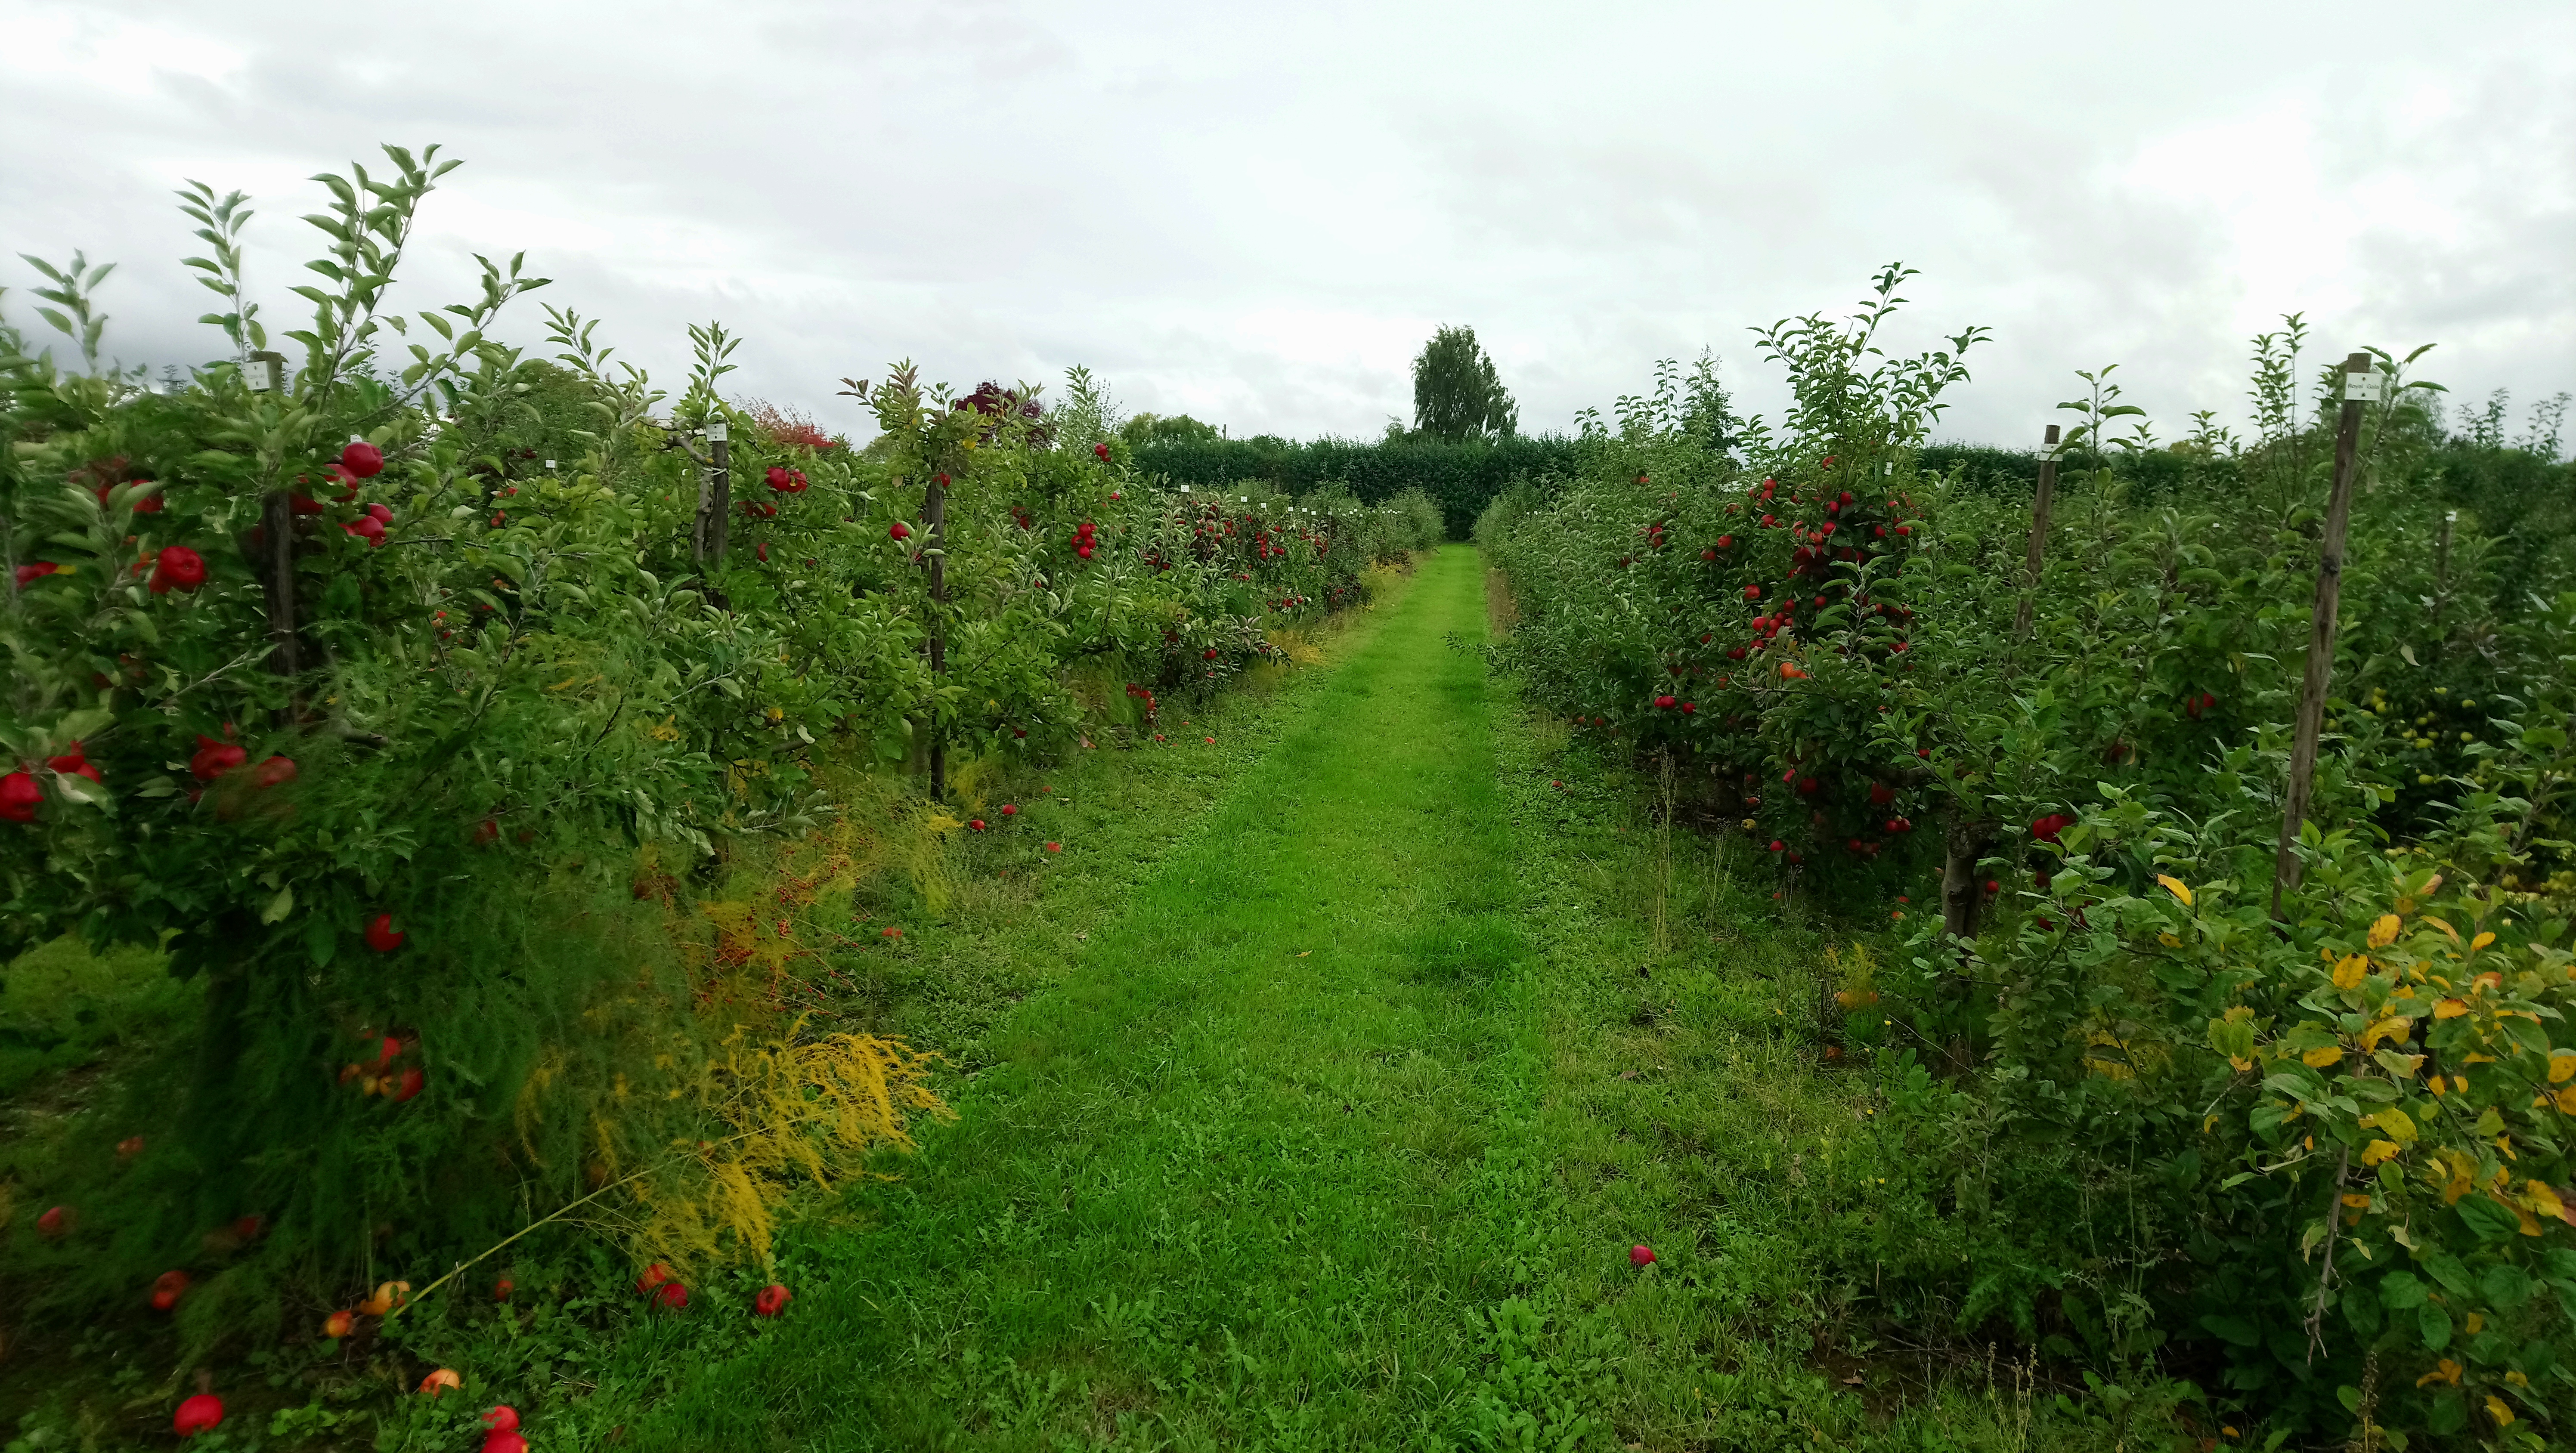 Apple orchards at the National Institute of Agricultural Botany and East Malling Research